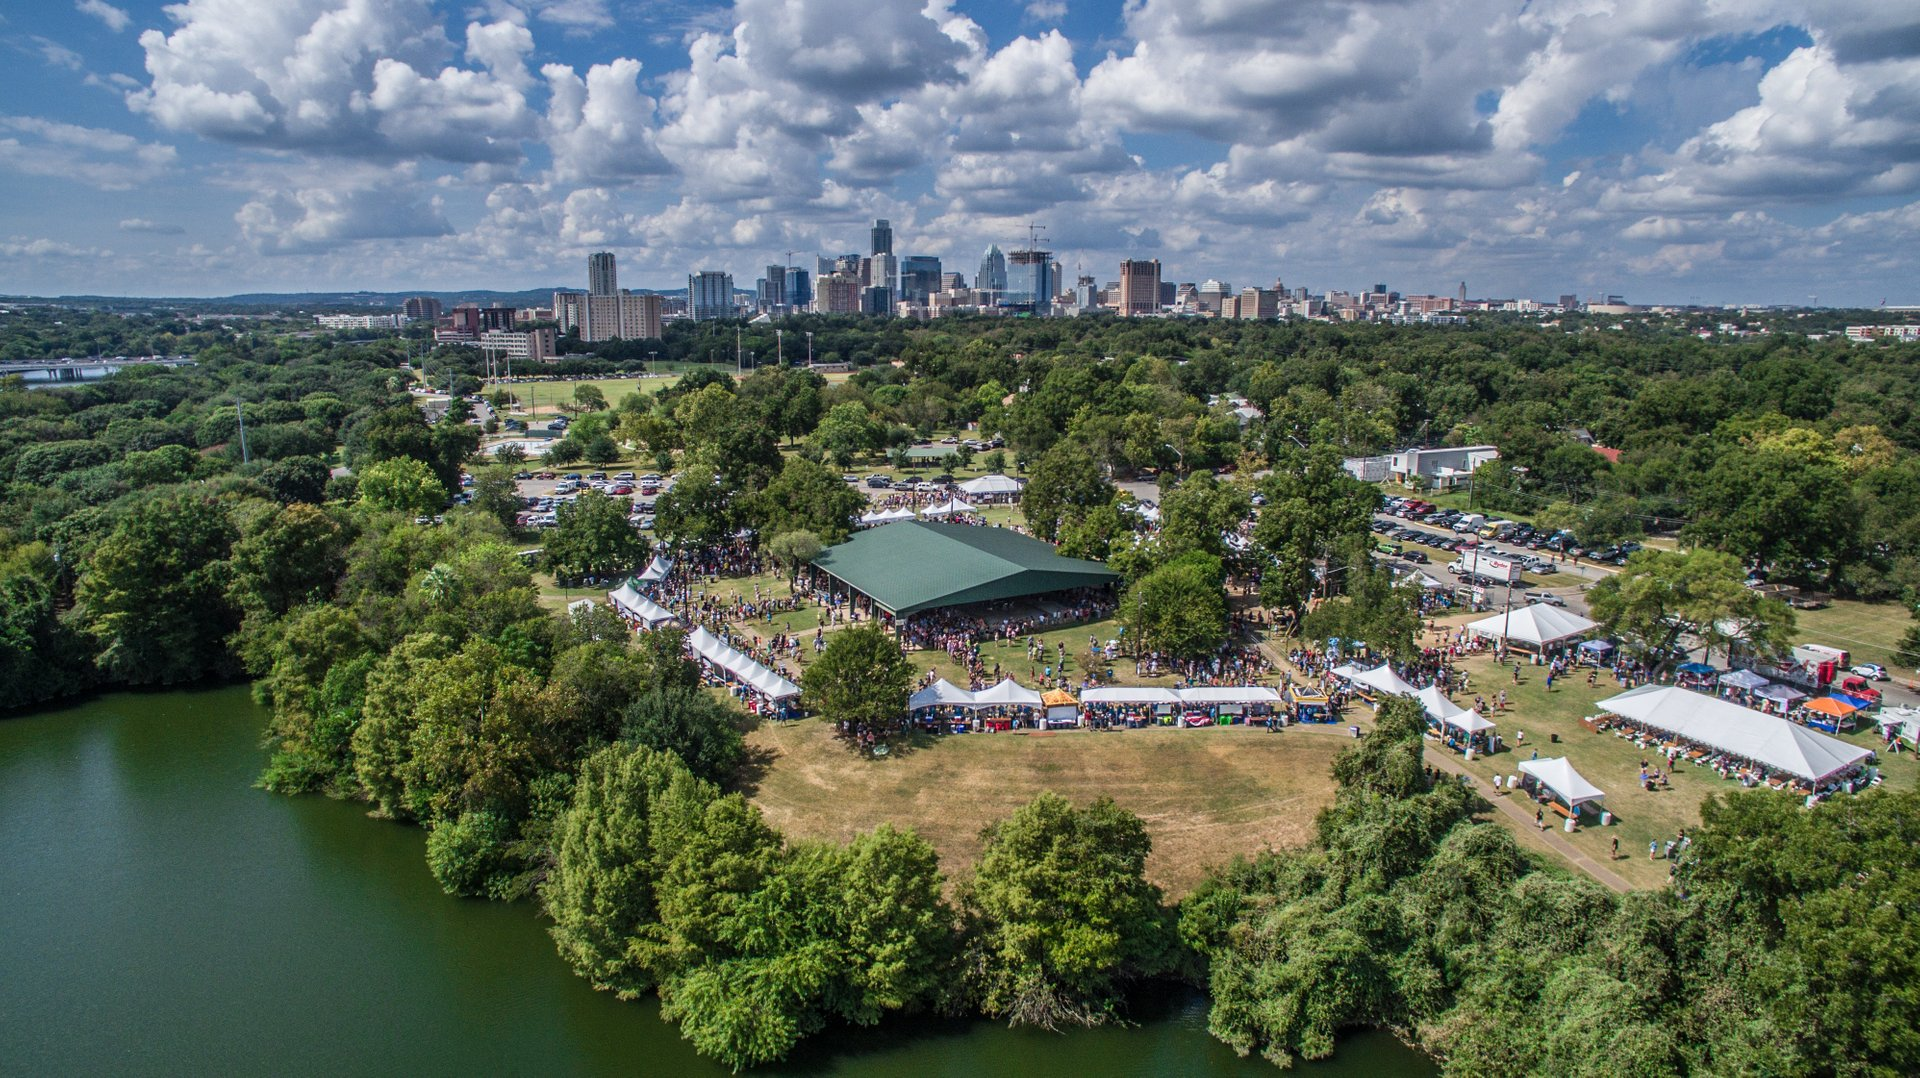 Texas Craft Brewers Festival in Texas 2019 - Best Time